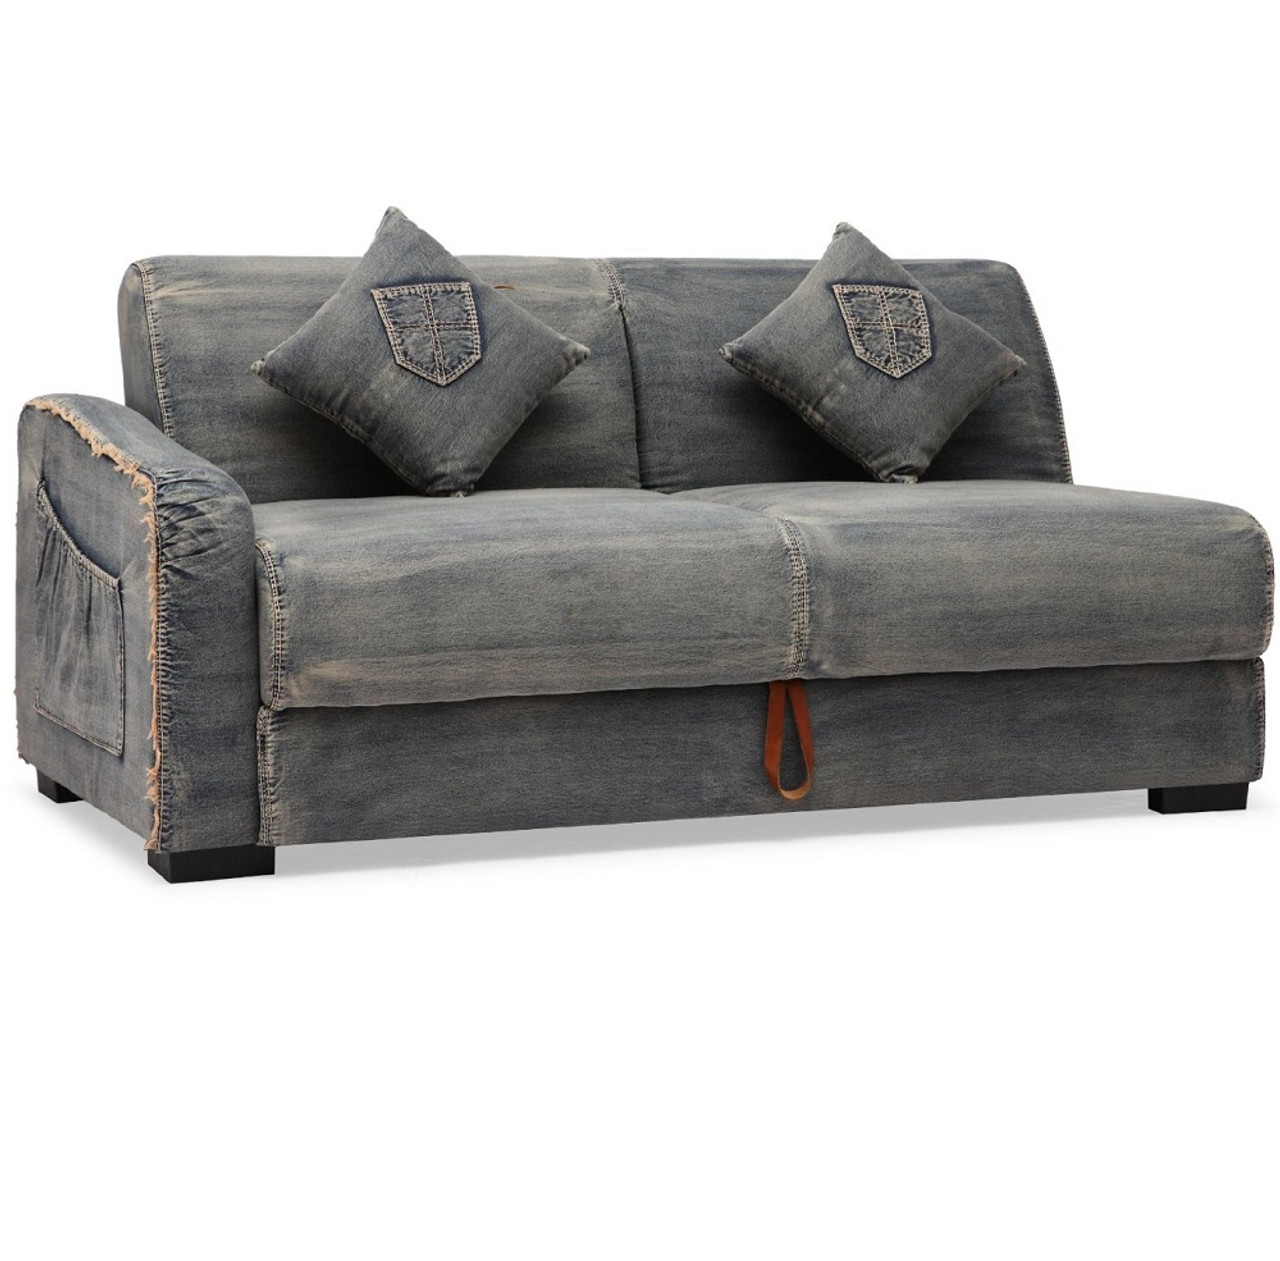 Denim sectional sleeper sofa catosferanet for Small sectional sofa denim